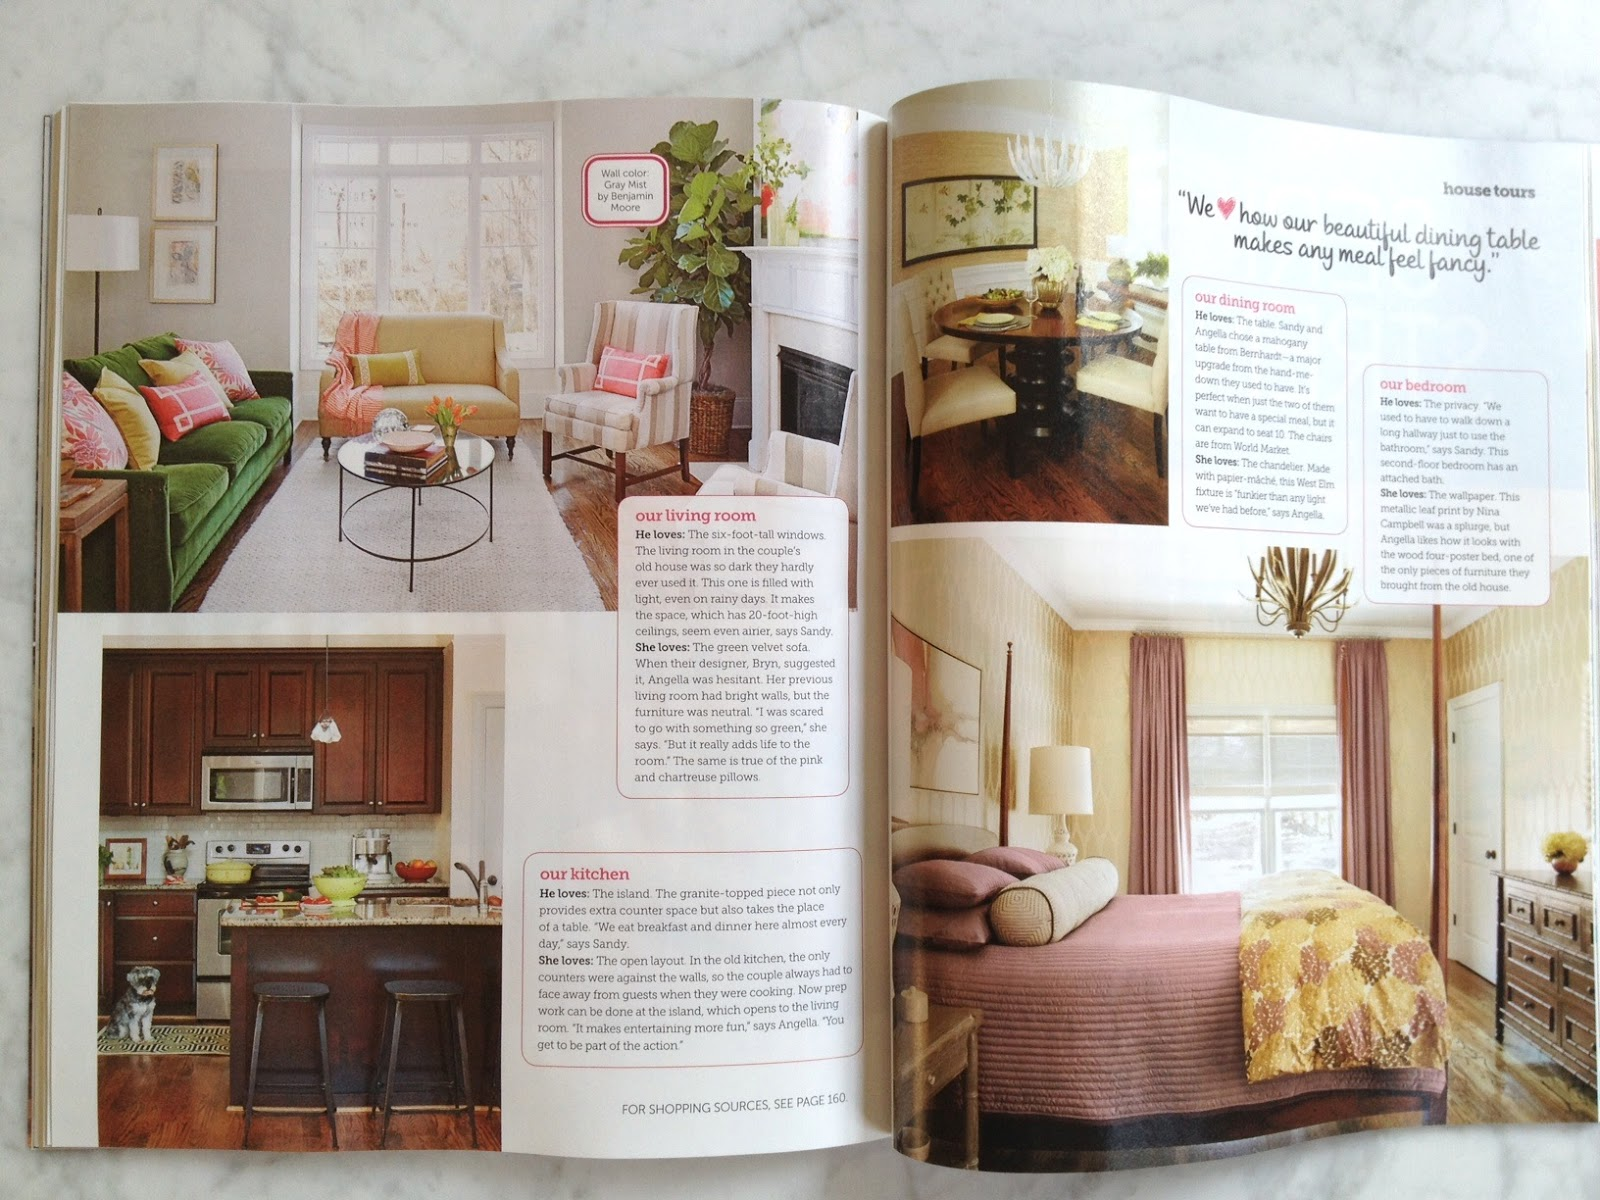 hgtv magazine 2014 furniture. It\u0027s In The September 2013 Issue Of HGTV Magazine If You Want To Check It Out! Hgtv 2014 Furniture G